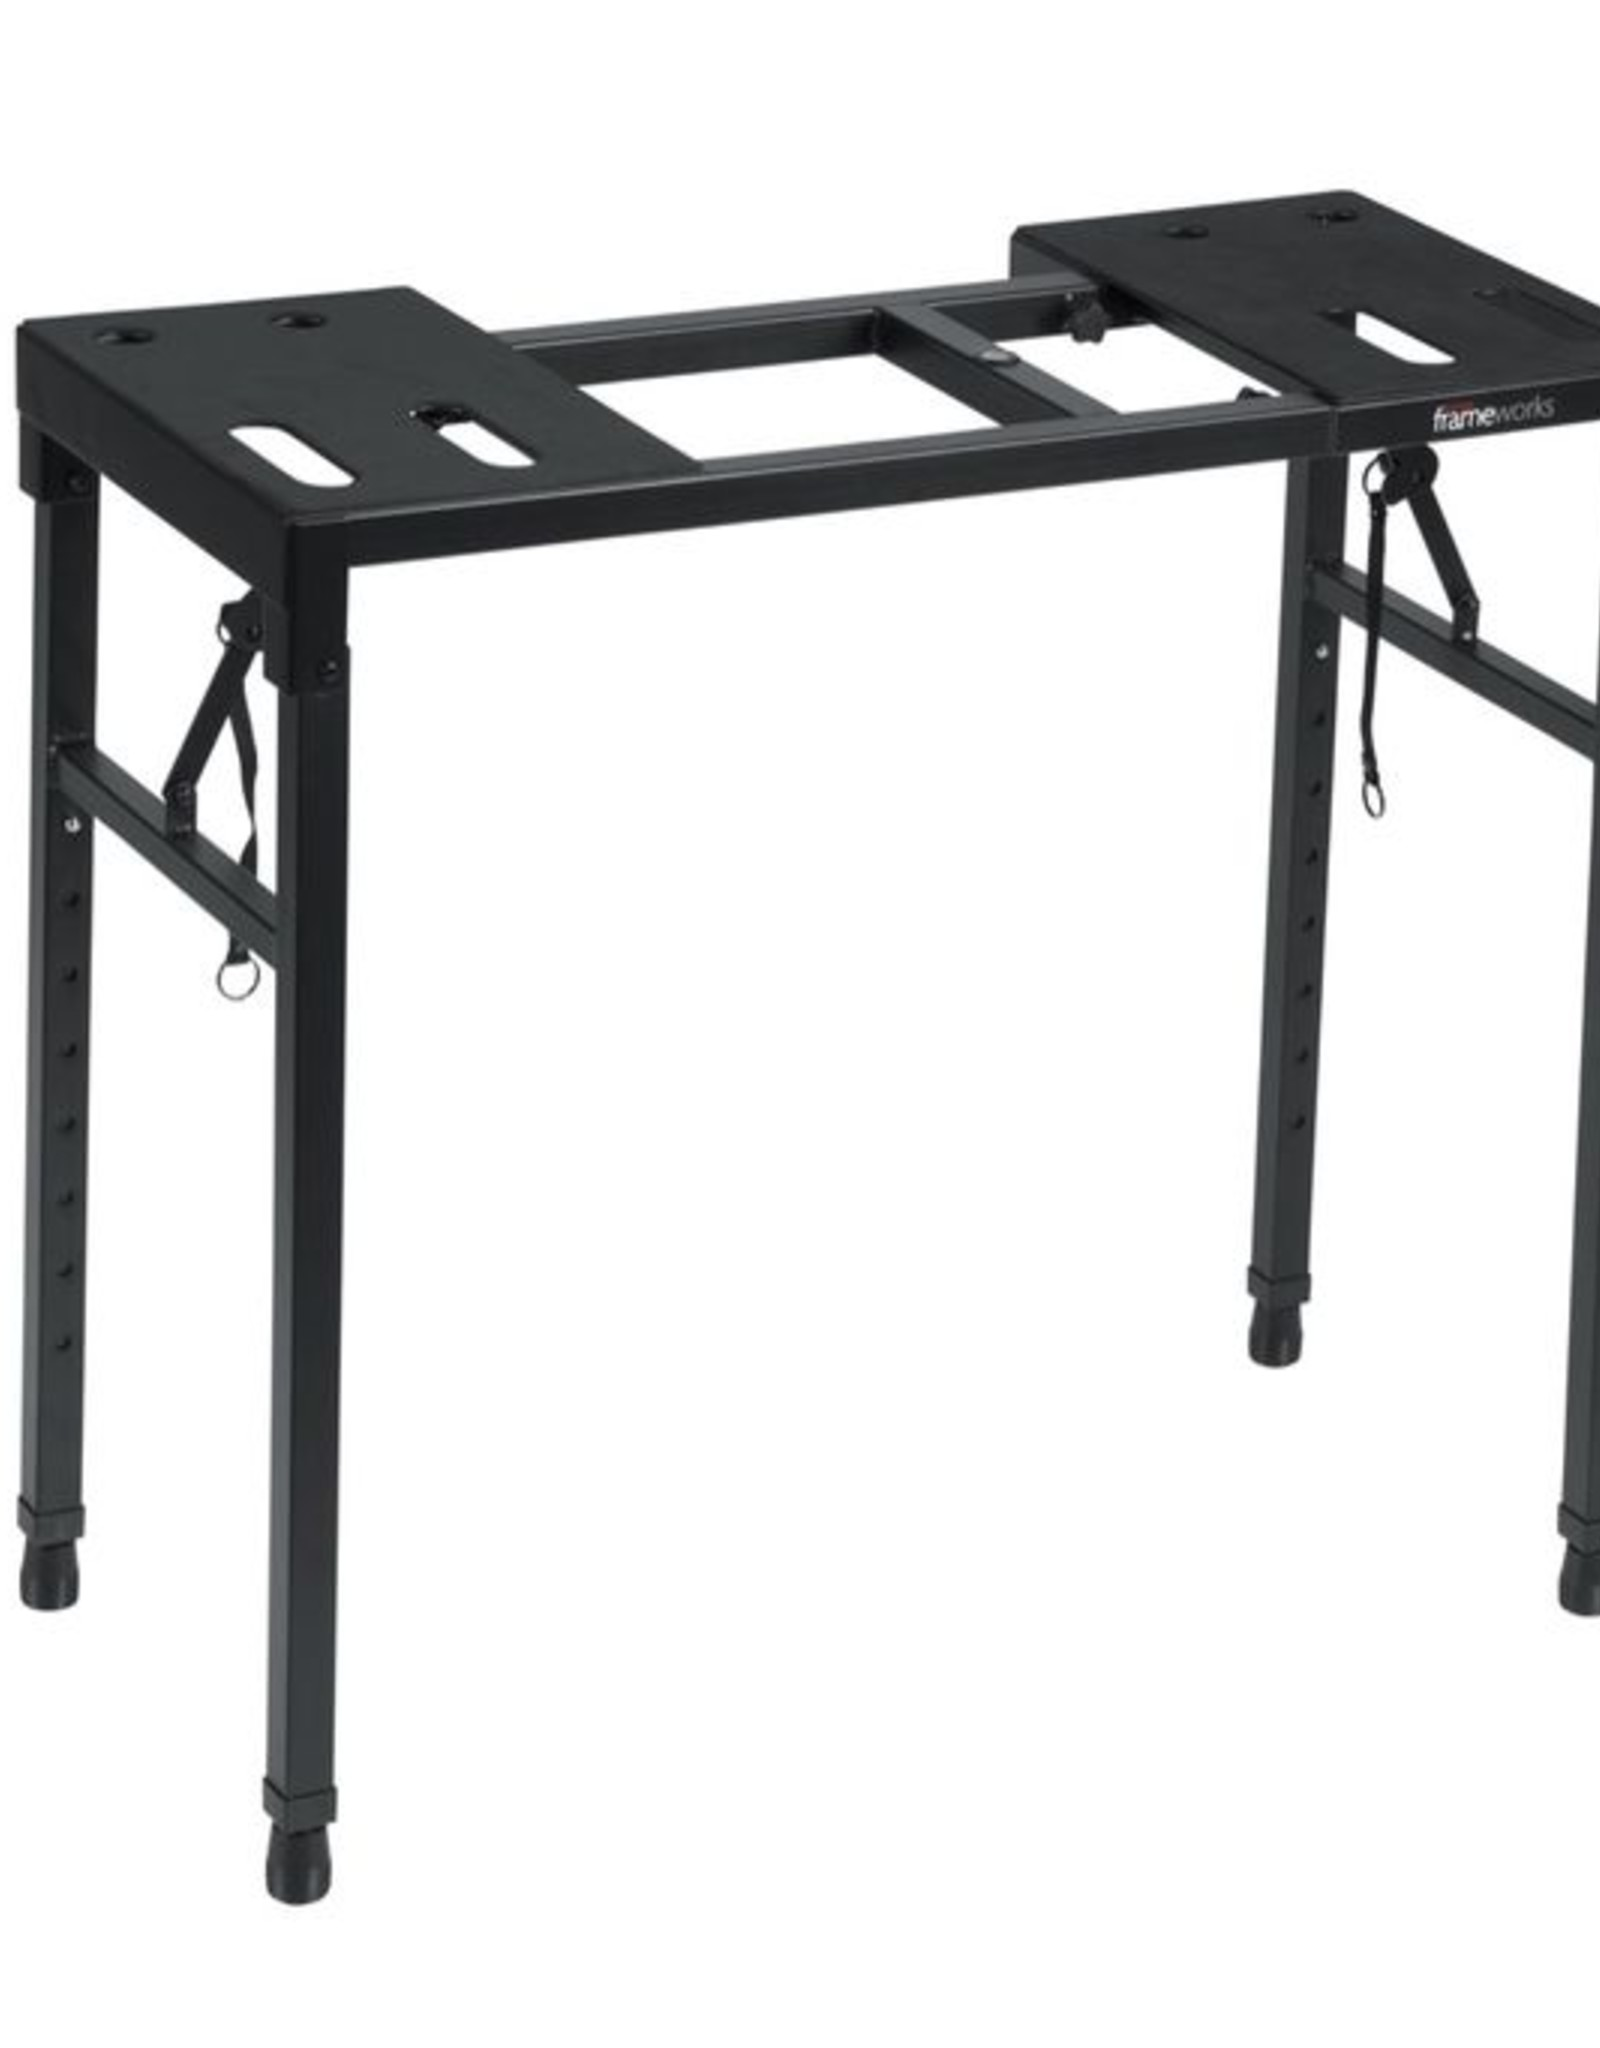 Gator Gator Frame Works Heavy-duty Table with Multi Adjustable Extrusions and built in leveling